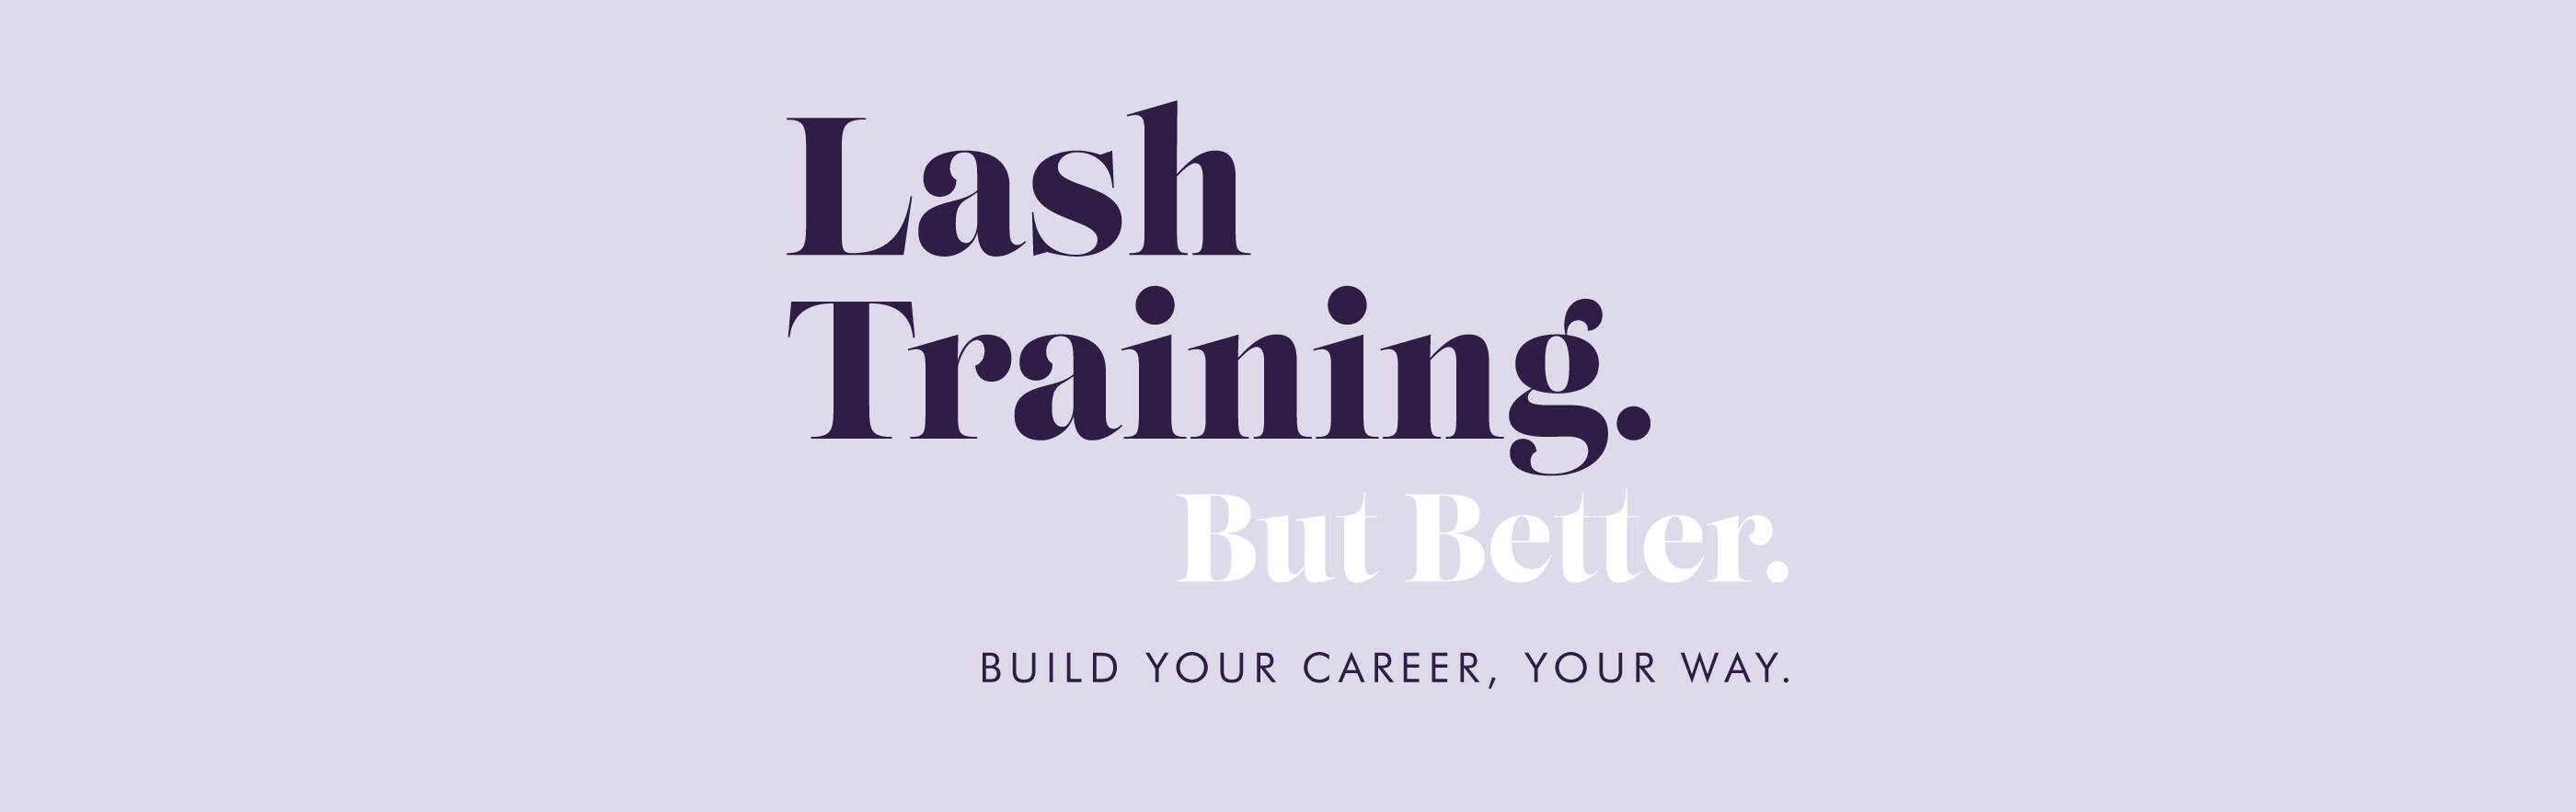 Lash training. But better. Build your career, your way.